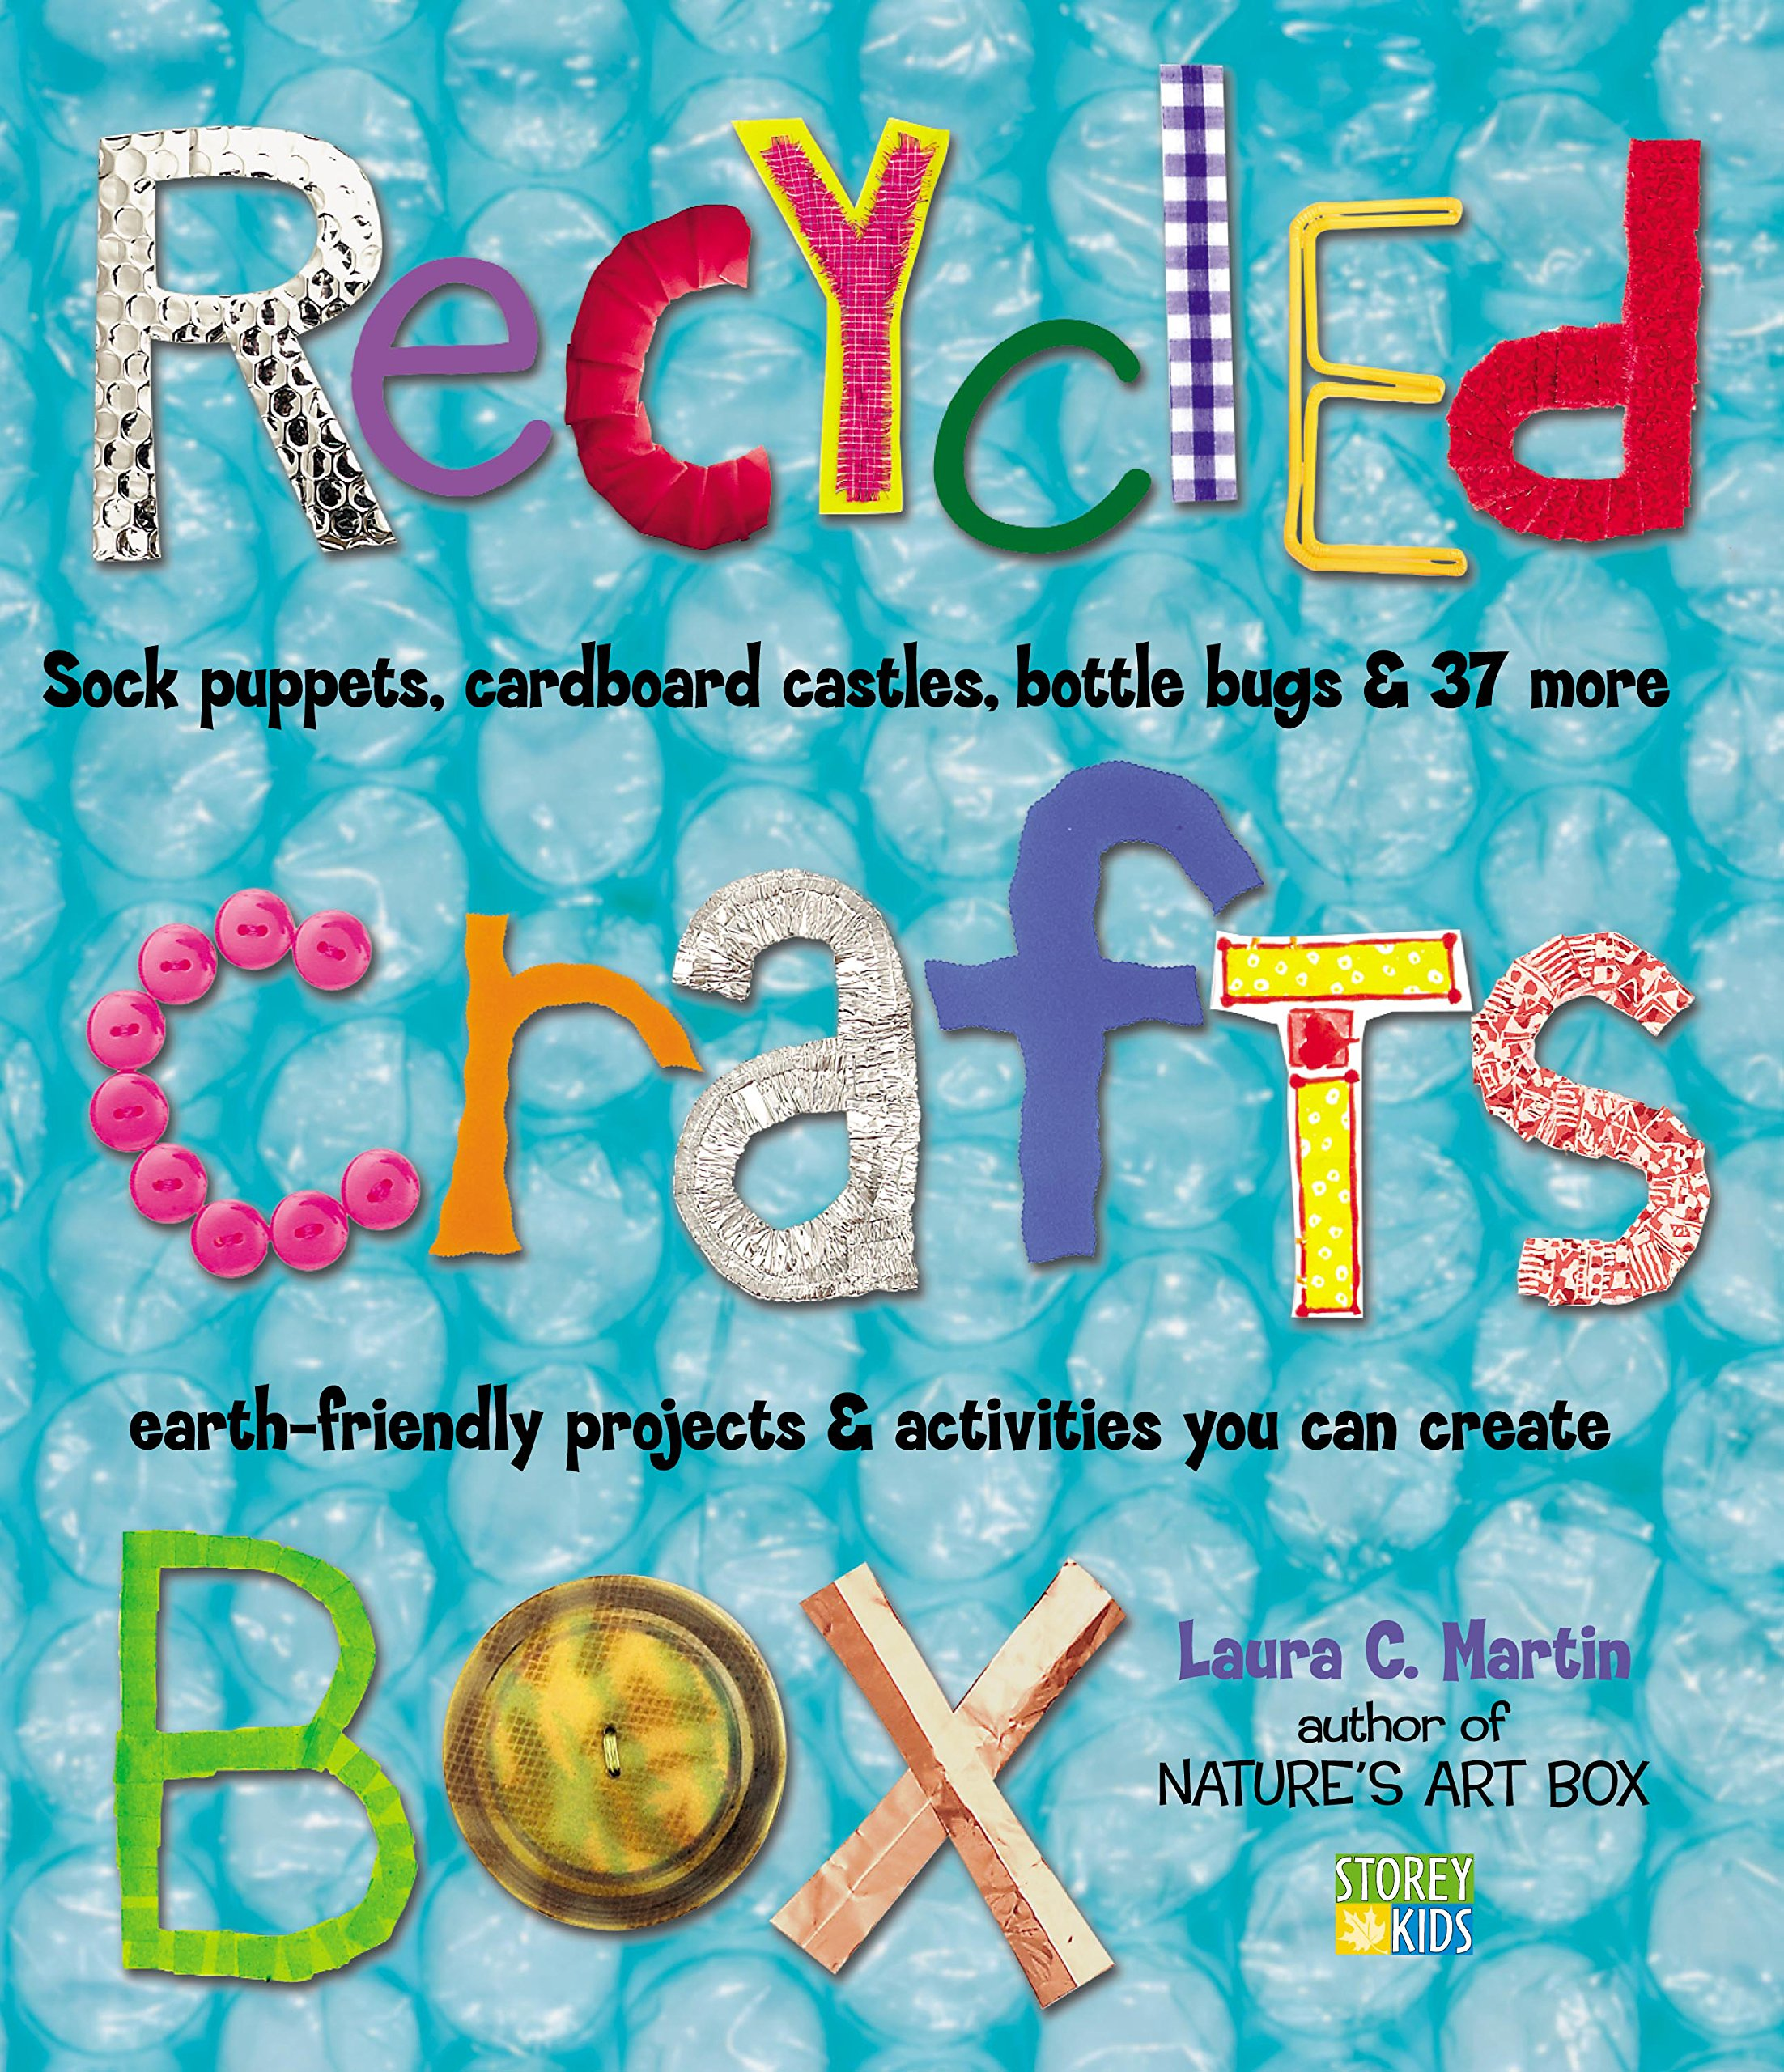 Recycled crafts box laura c martin 0037038175226 amazon books thecheapjerseys Choice Image